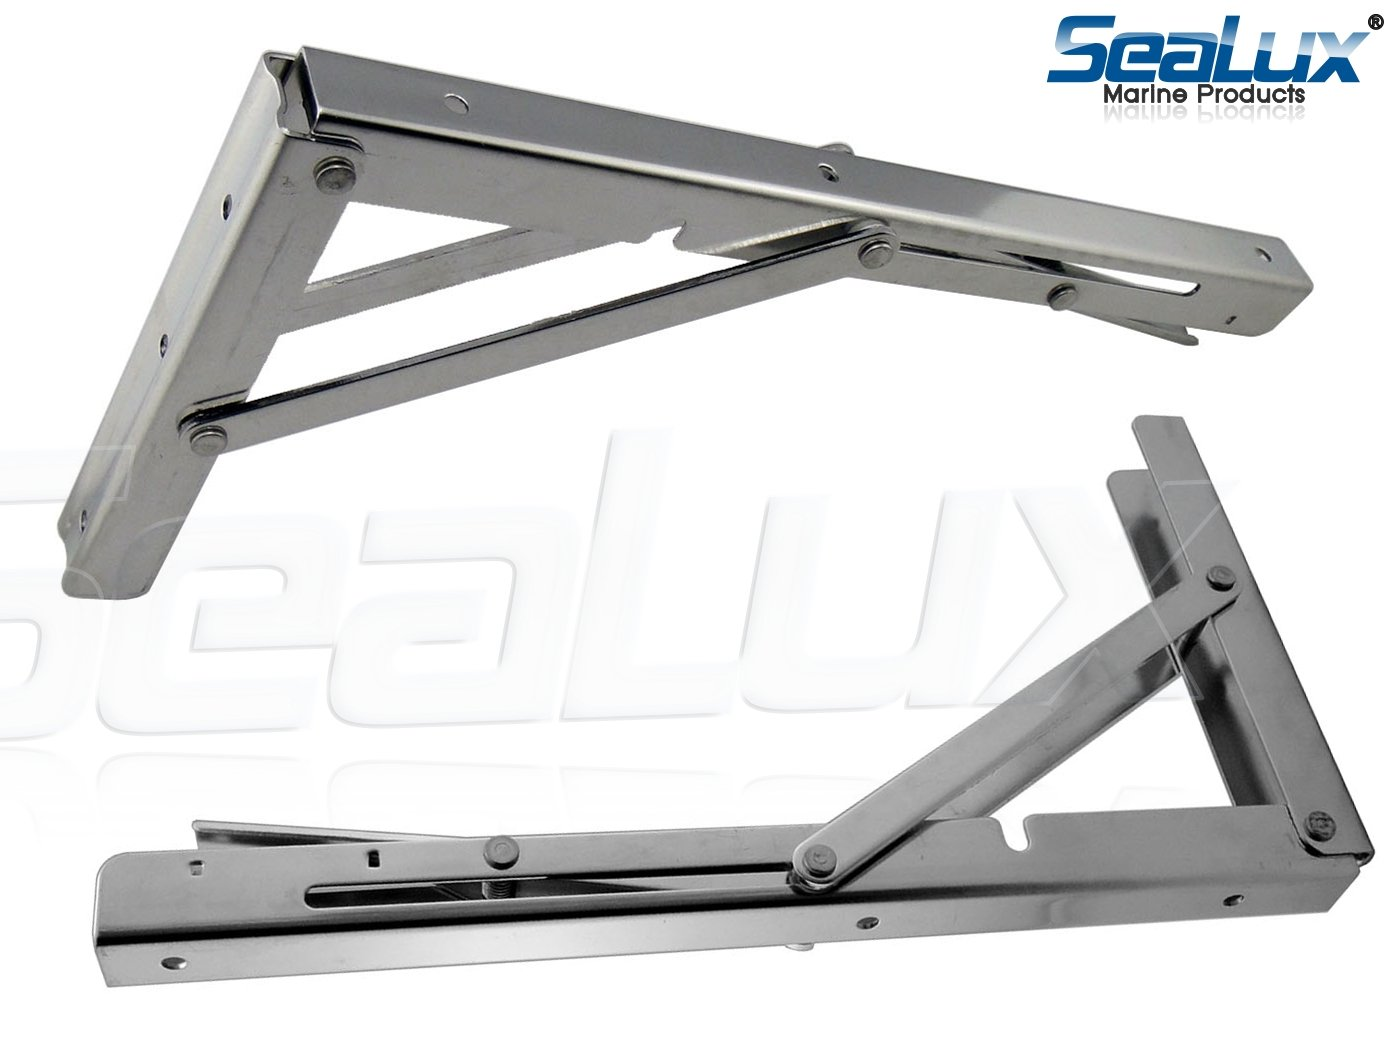 SeaLux Stainless Steel Folding Brackets 90 degree Shelf, Bench, Table Support 12'' Long with easy reach Long release Handle / Max. Bearing 330 lb (Sold as 2 pcs) by SeaLux Marine Products (Image #2)